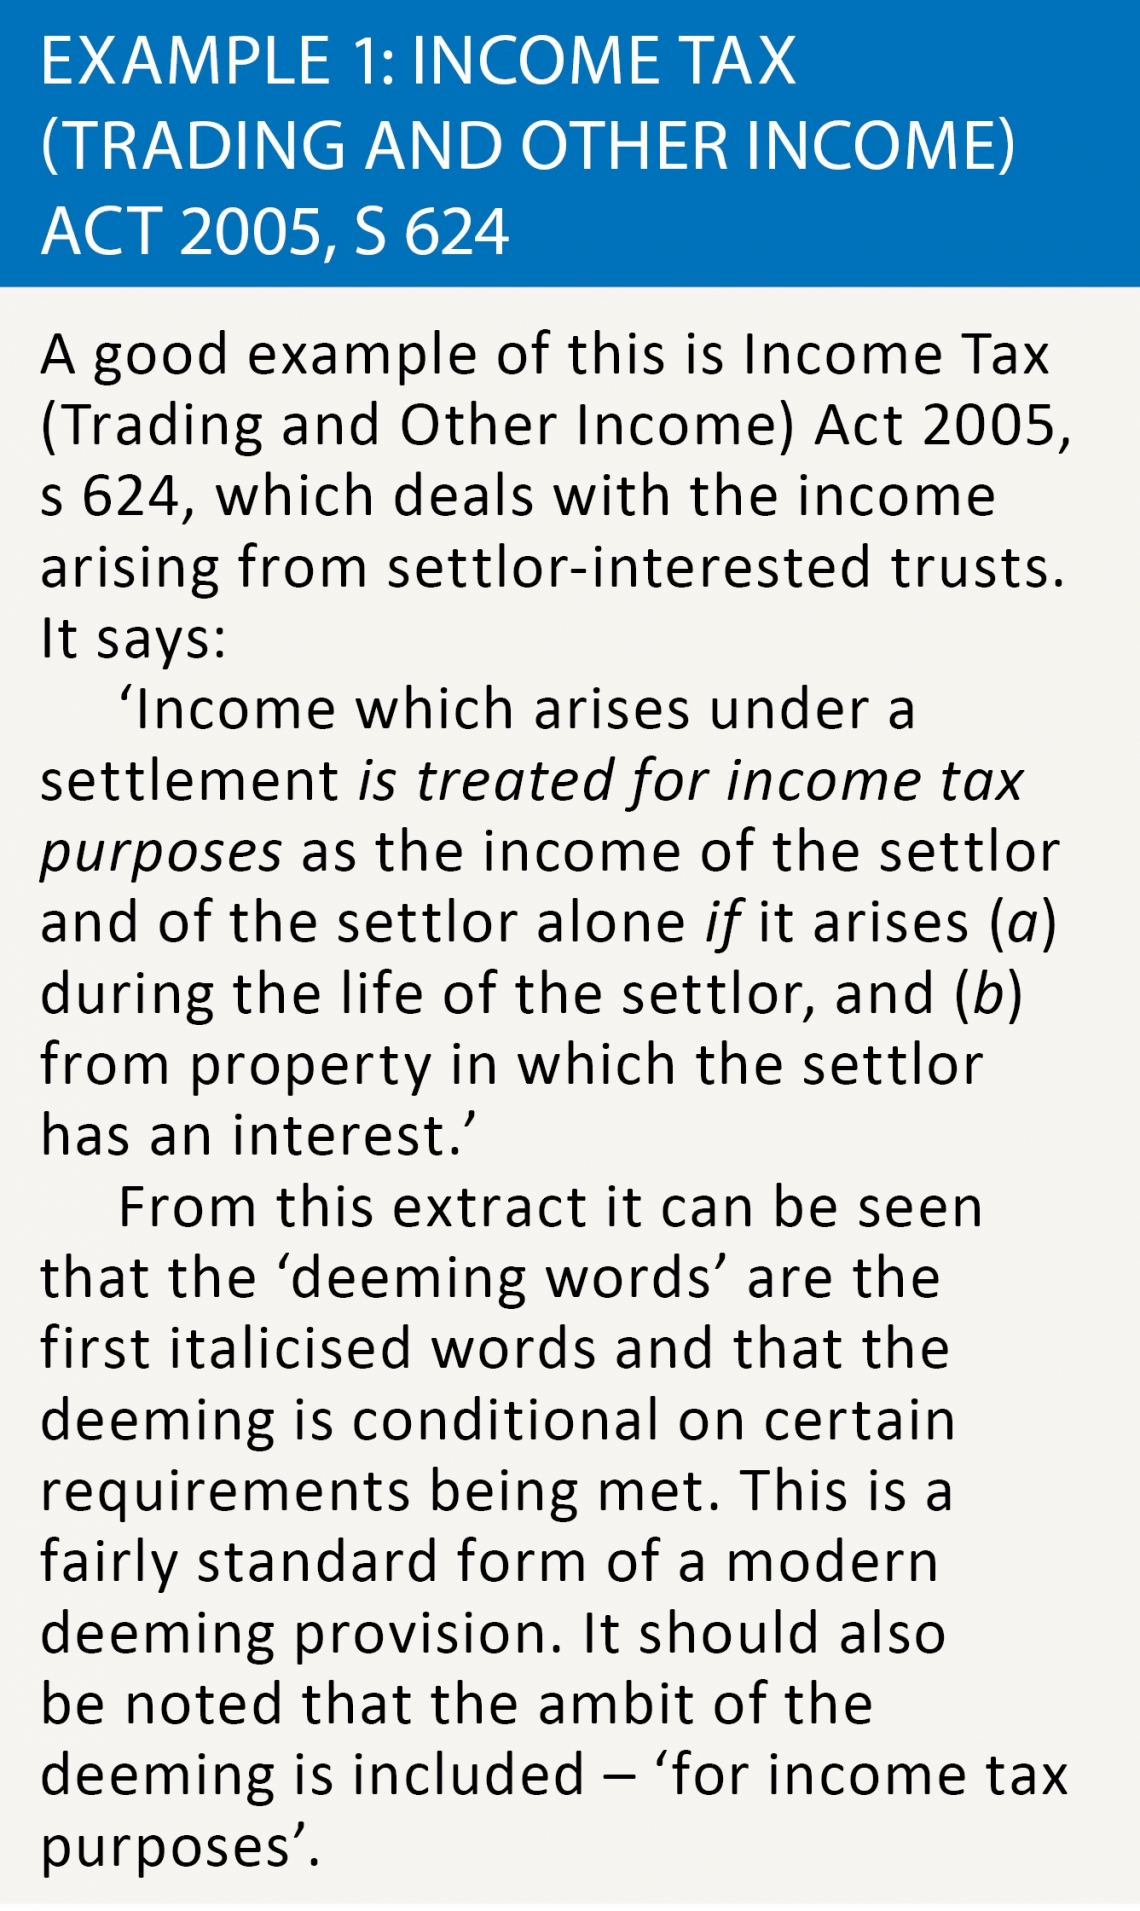 Example 1: Income Tax (trading and other income) Act 2005, S 624